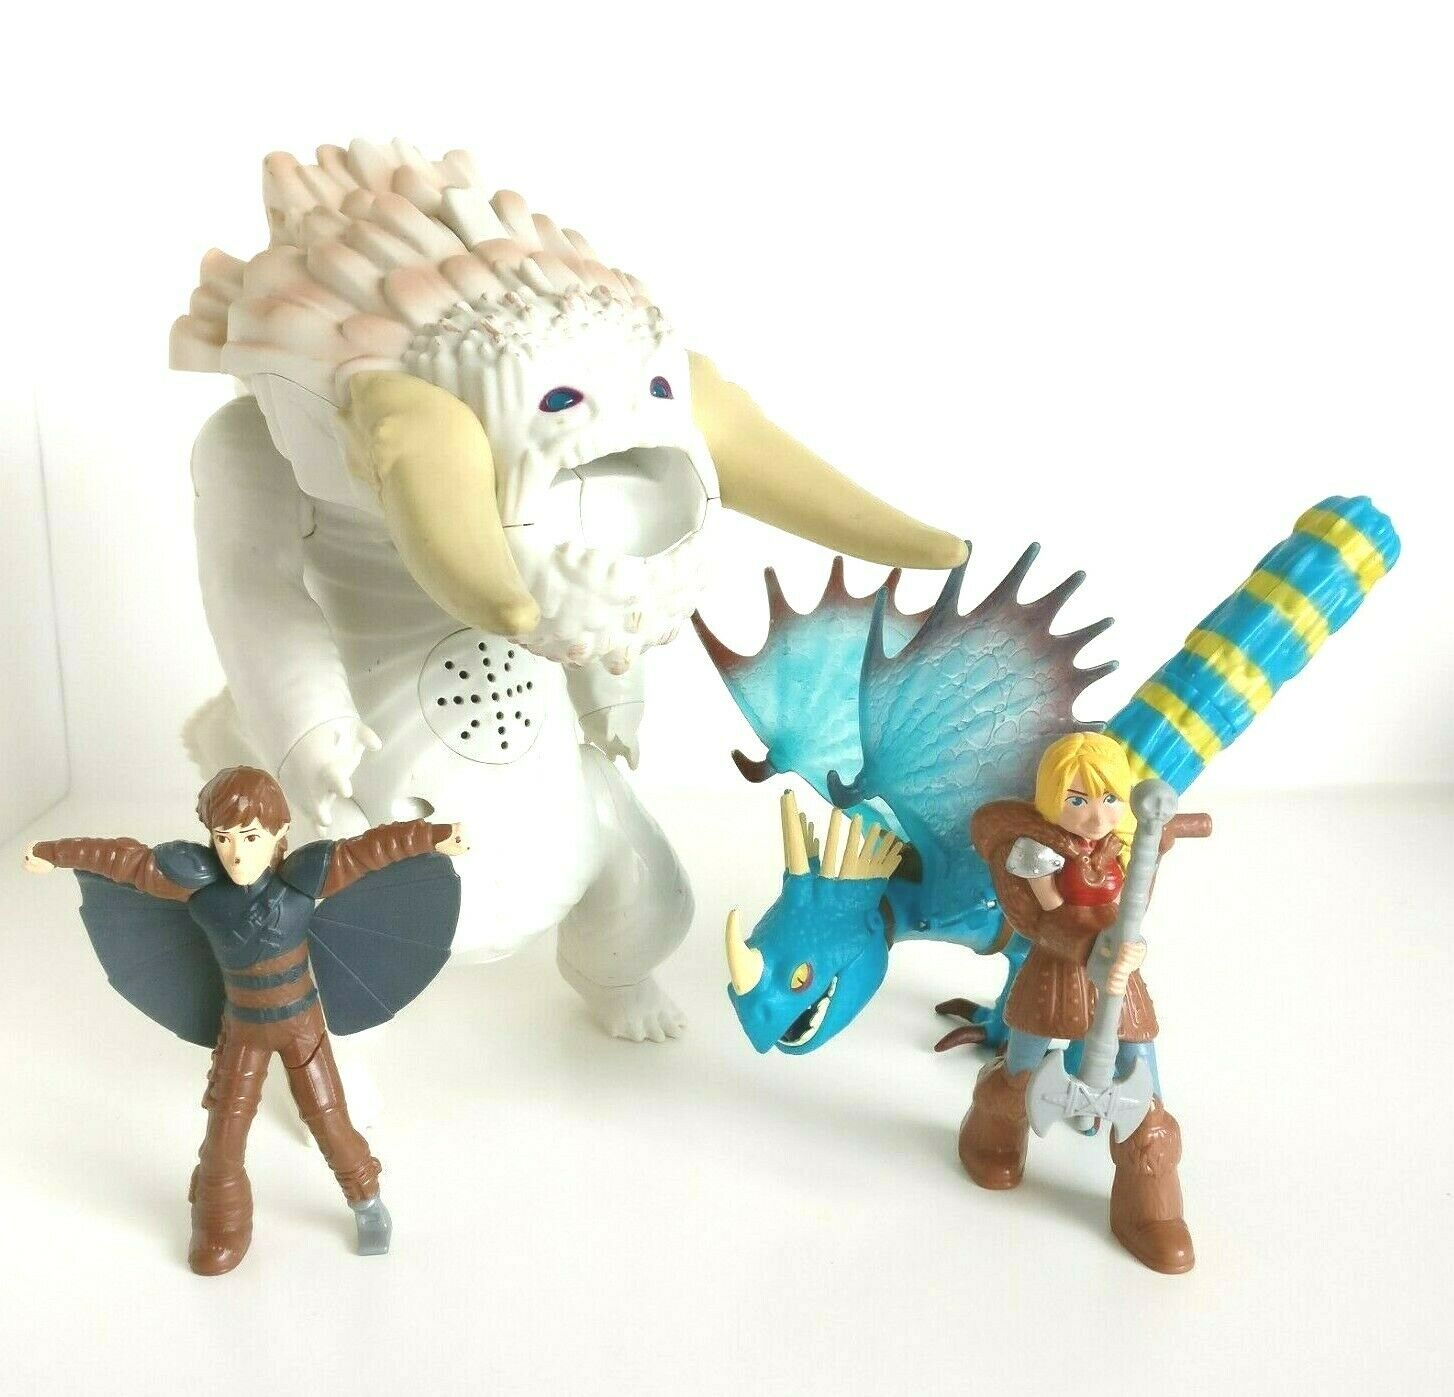 How To Train Your Dragon Valka's Good Bewilderbeast Dreamworks Set & Hiccup